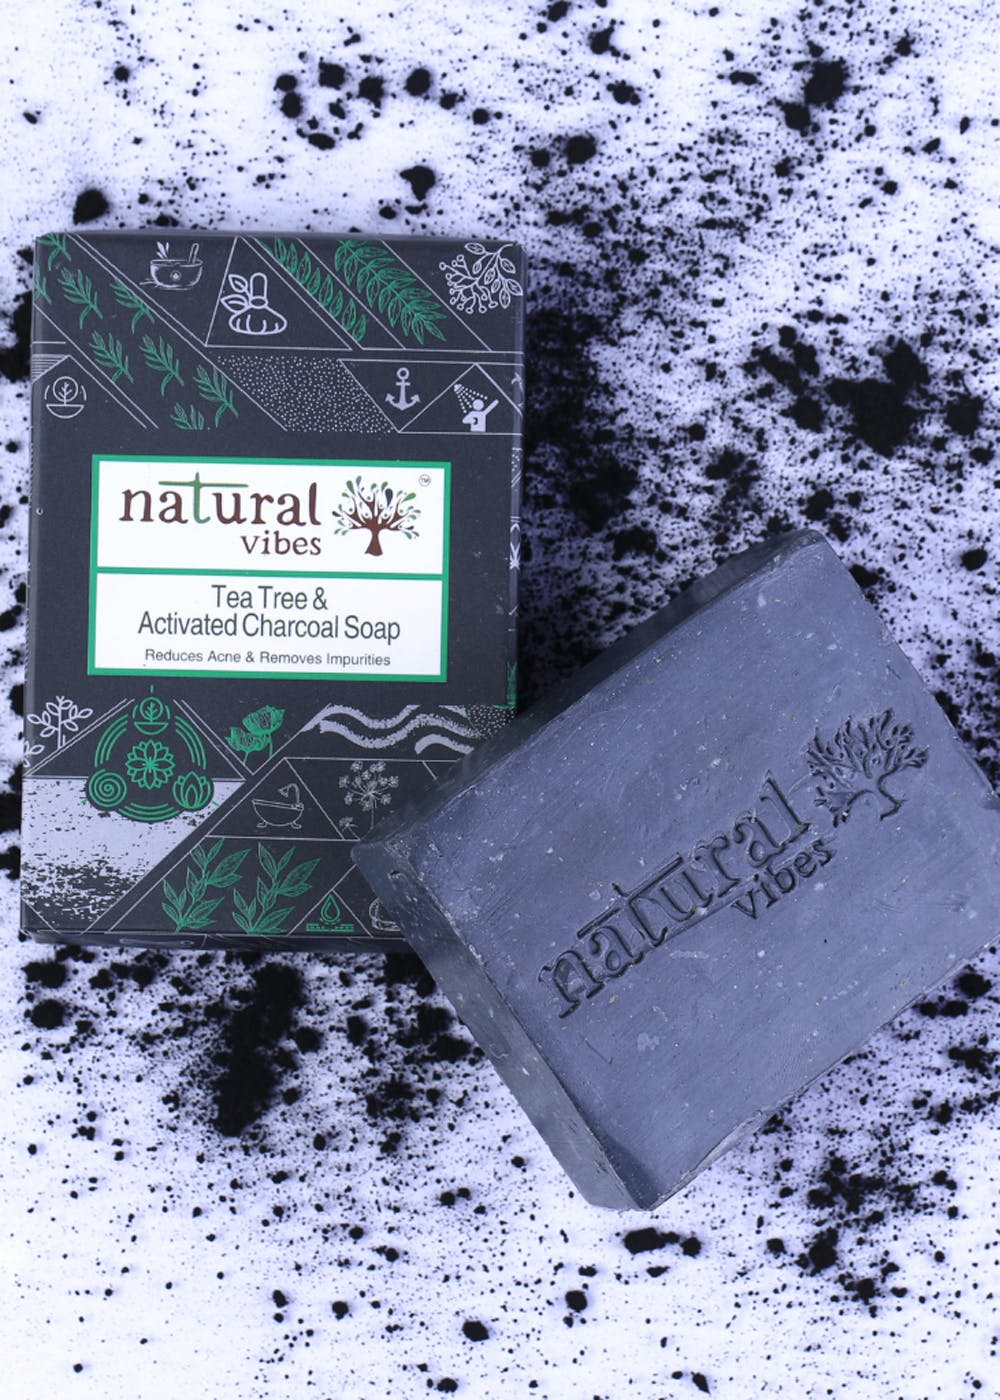 Tea Tree and Activated Charcoal Soap (150g)